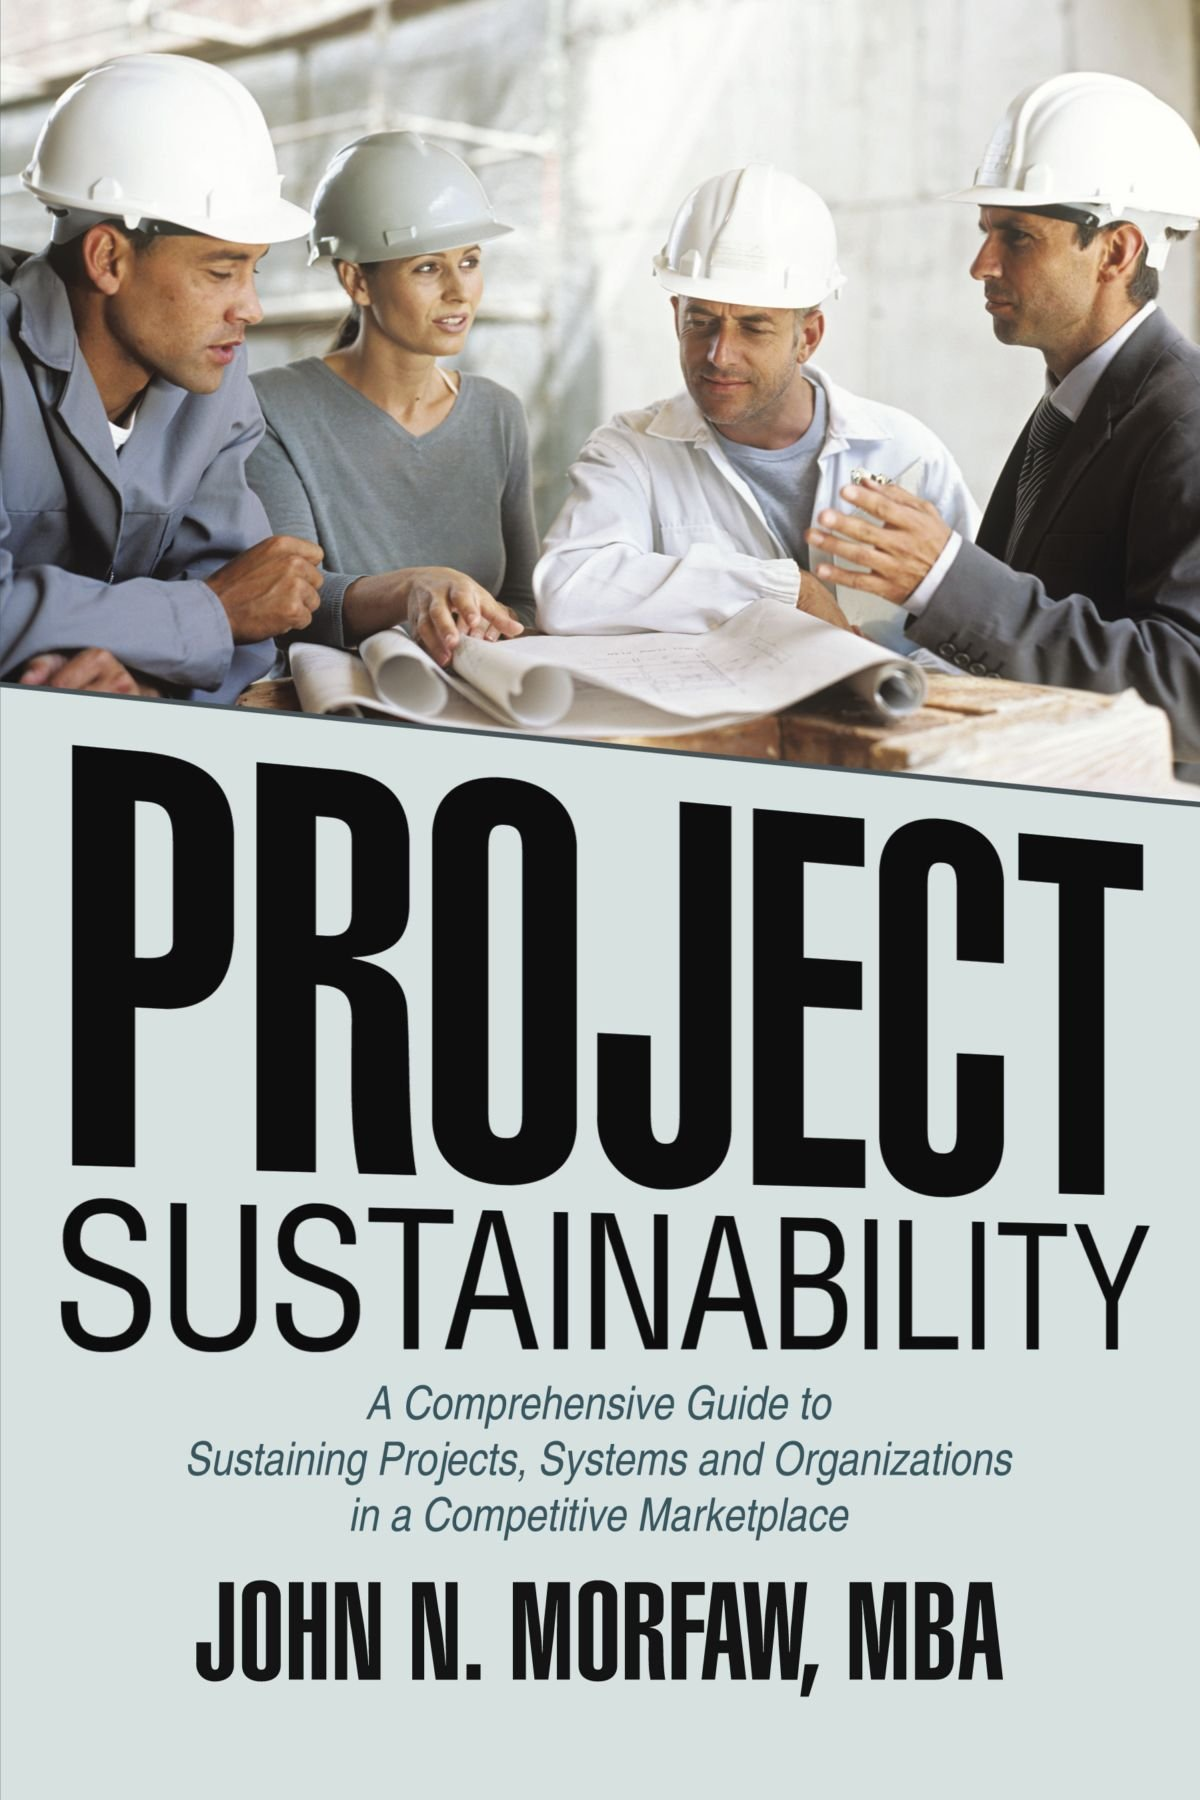 Project Sustainability: A Comprehensive Guide To Sustaining Projects, Systems And Organizations In A Competitive Marketplace pdf